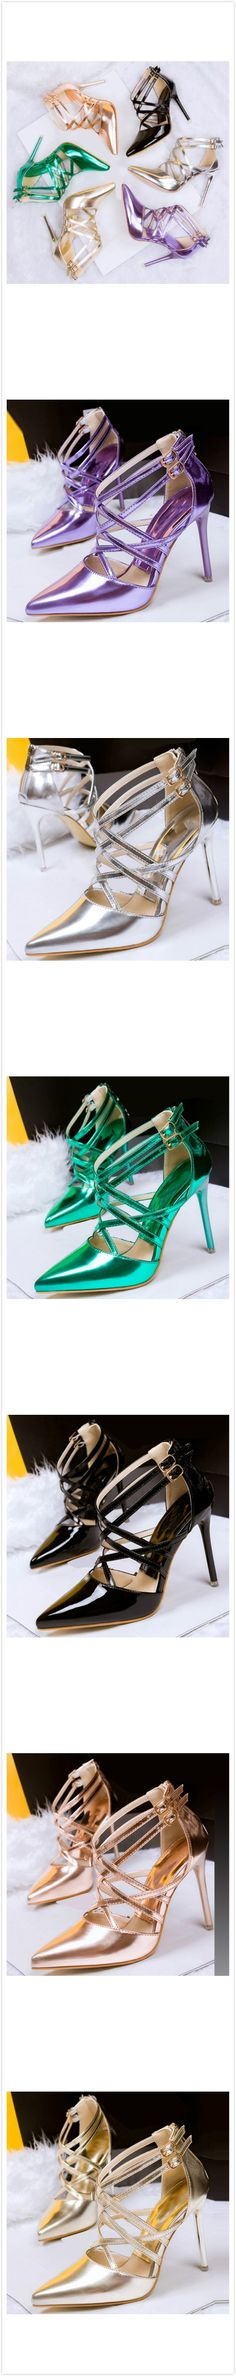 Pointed Toe High Heels Stiletto Cross Sandals,6 colors for your option. Check more info. from www.azbro.com